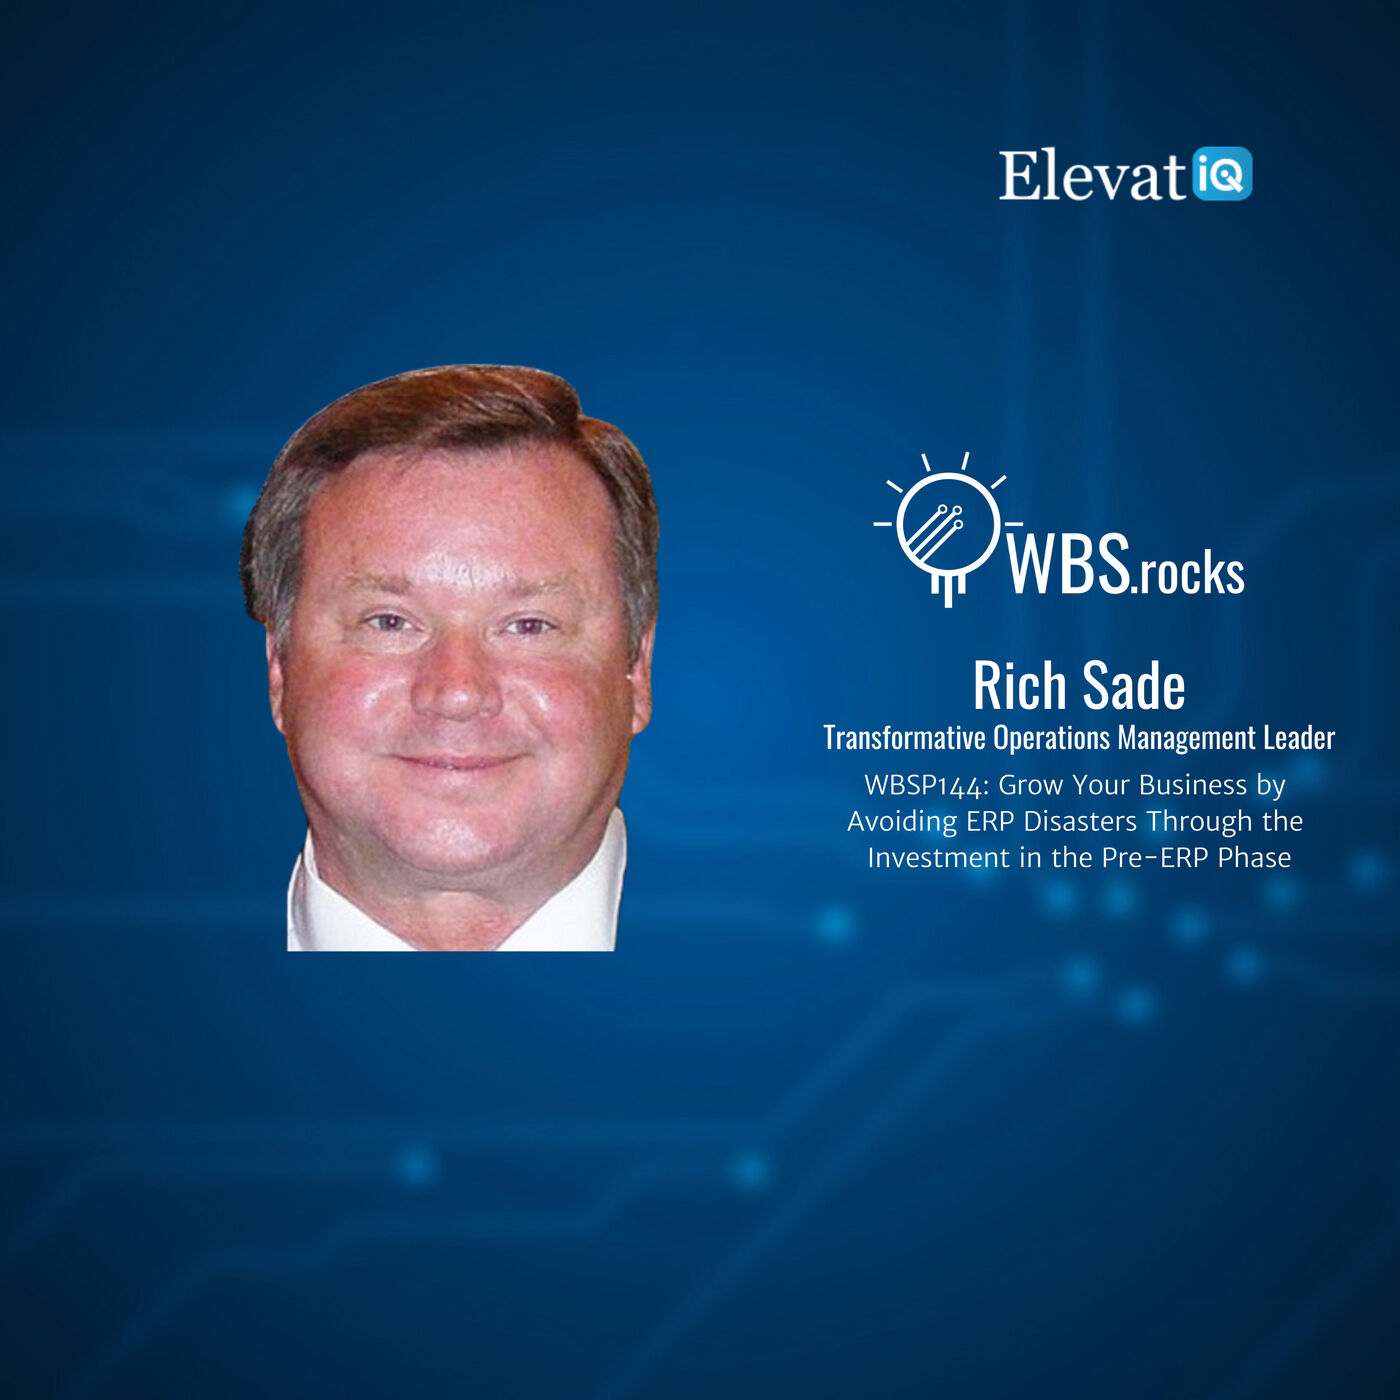 WBSP144: Grow Your Business by Avoiding ERP Disasters Through the Investment in the Pre-ERP Phase w/ Rich Sade